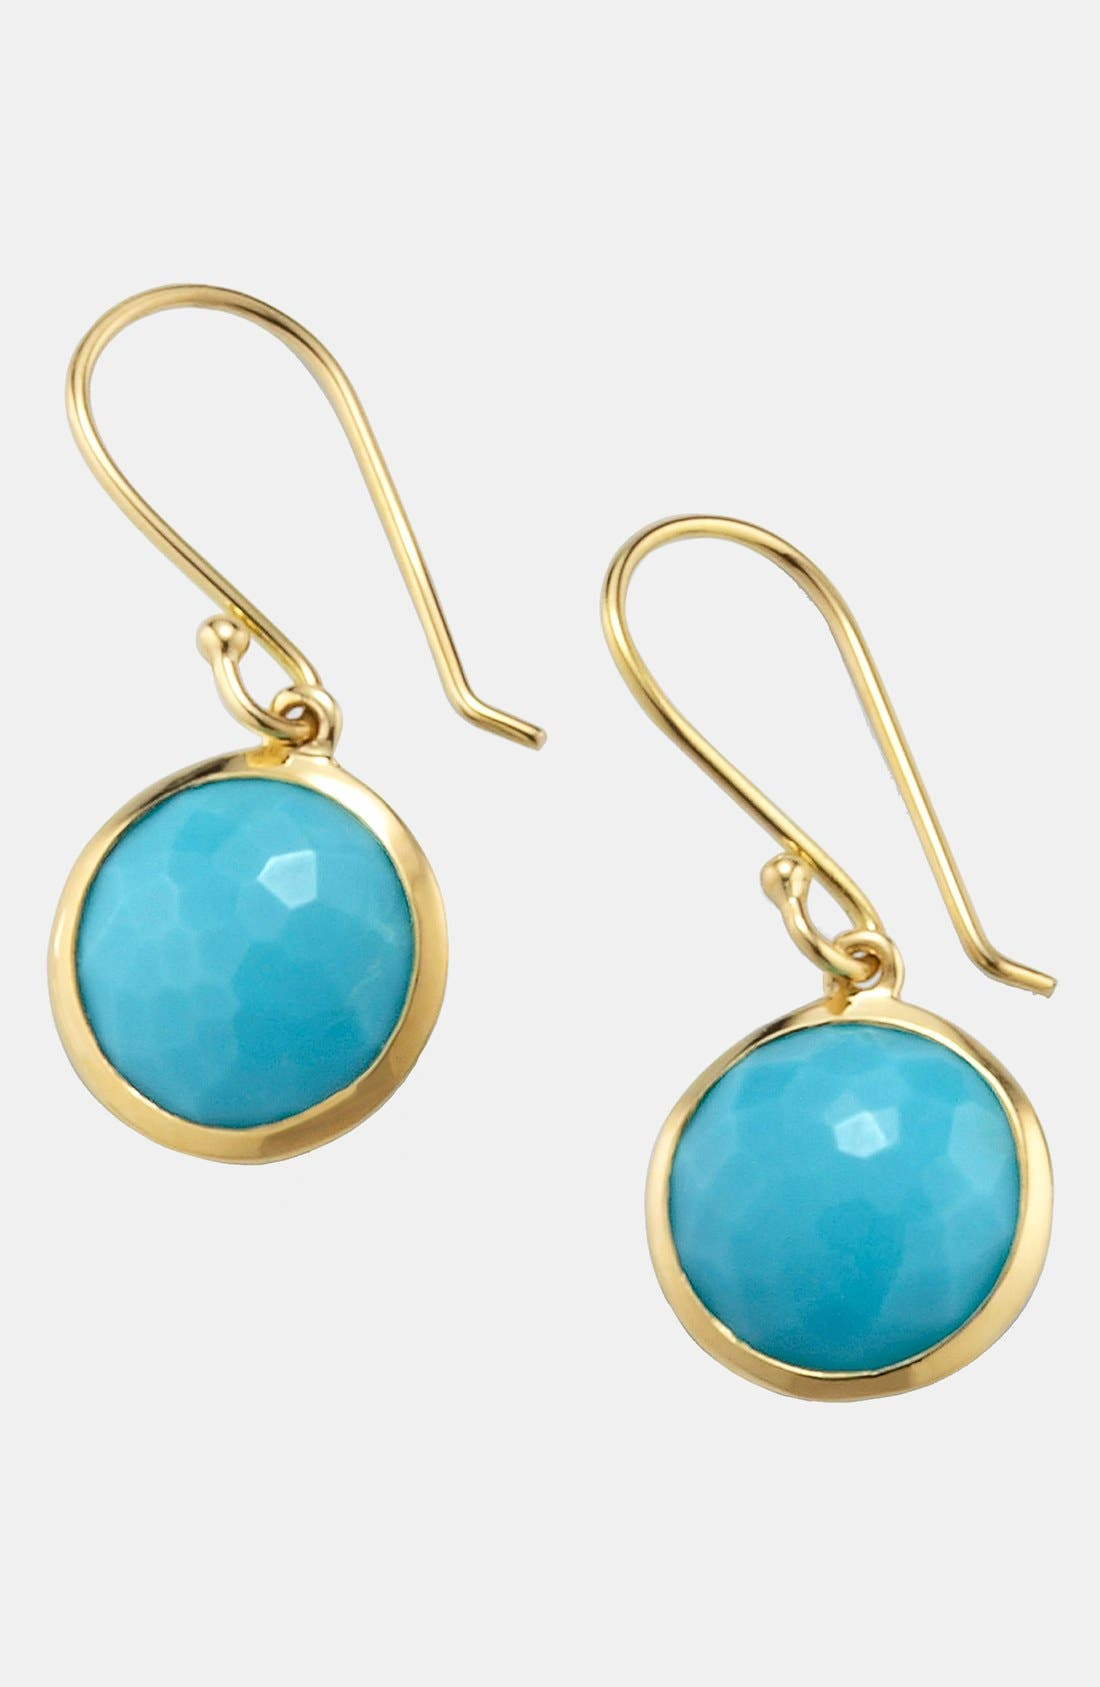 'Rock Candy - Mini Lollipop' 18k Gold Drop Earrings,                             Main thumbnail 1, color,                             YELLOW GOLD/TURQUOISE